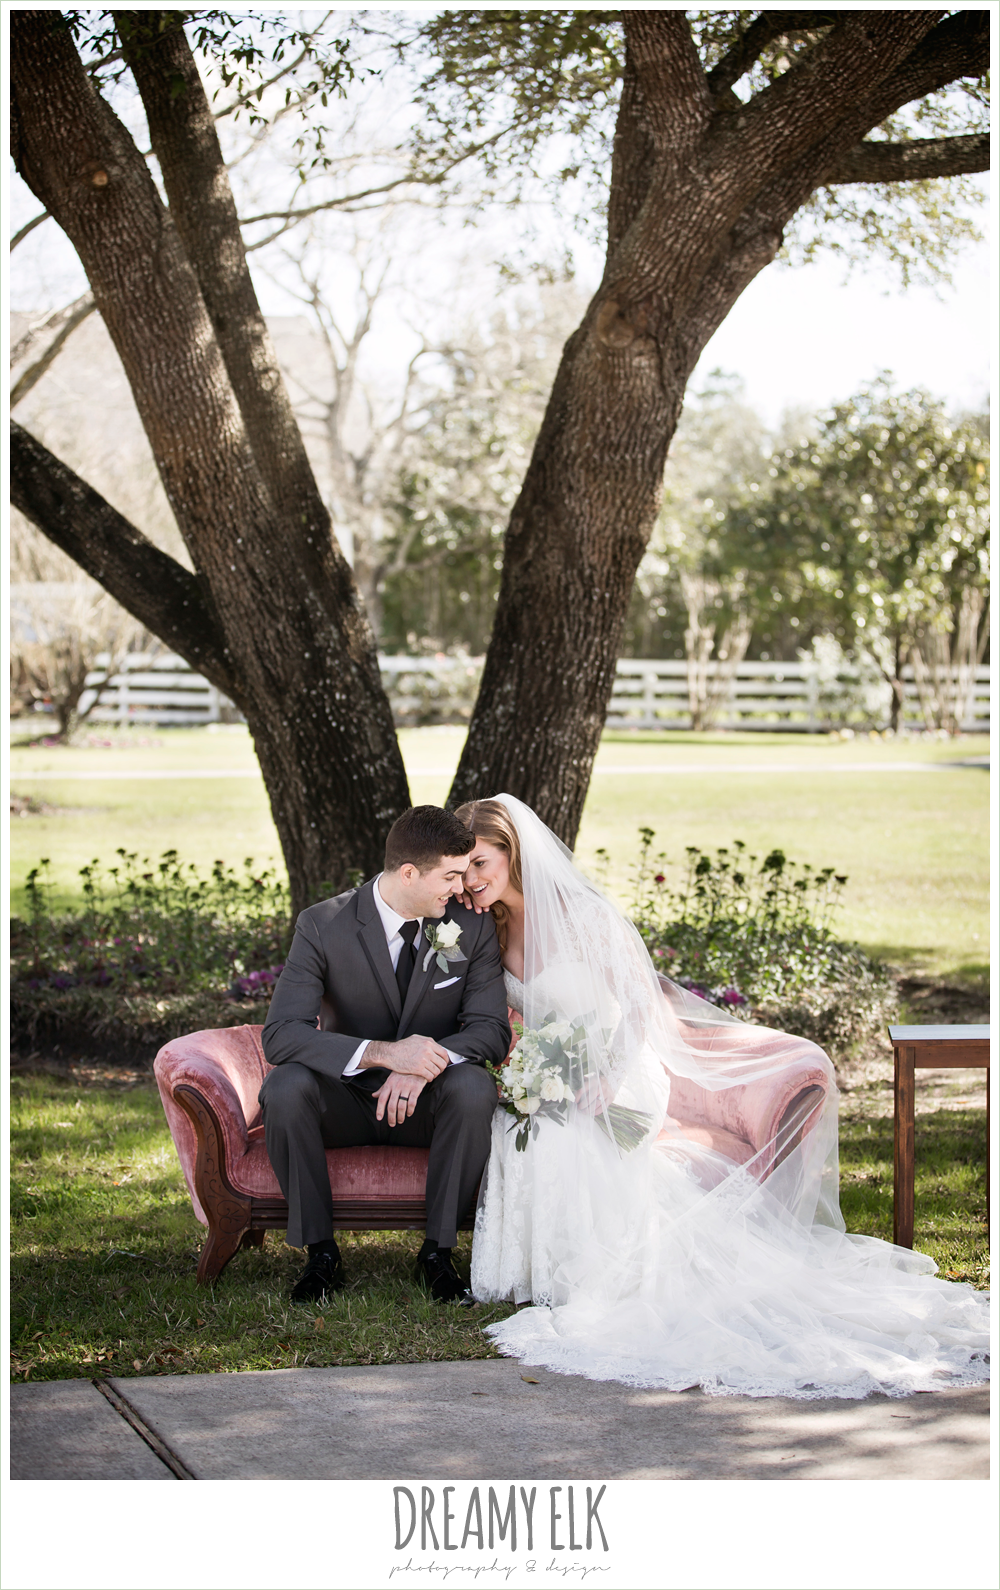 pink vintage couch, bride and groom, long sleeve lace wedding dress, long lace veil, white wedding bouquet, dark gray suit and black tie, morning winter january wedding, ashelynn manor {dreamy elk photography and design}